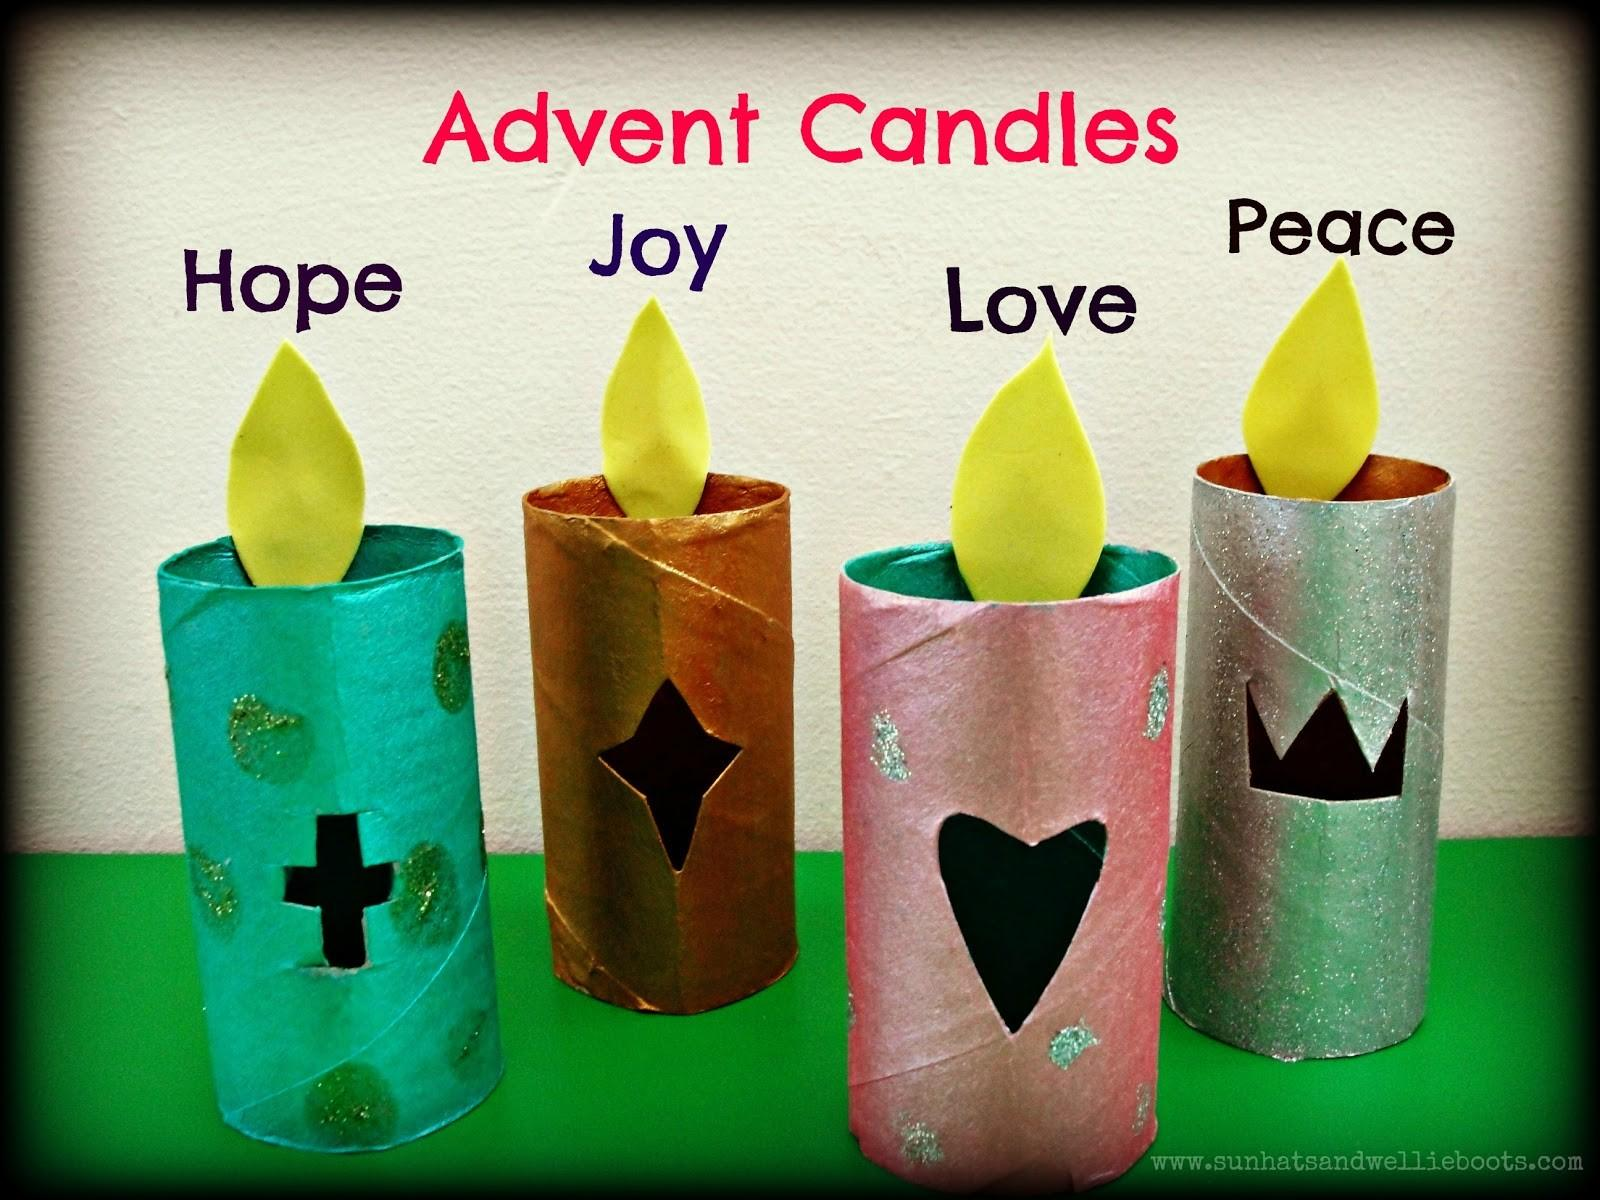 Sun Hats Wellie Boots Glowing Paper Advent Candles